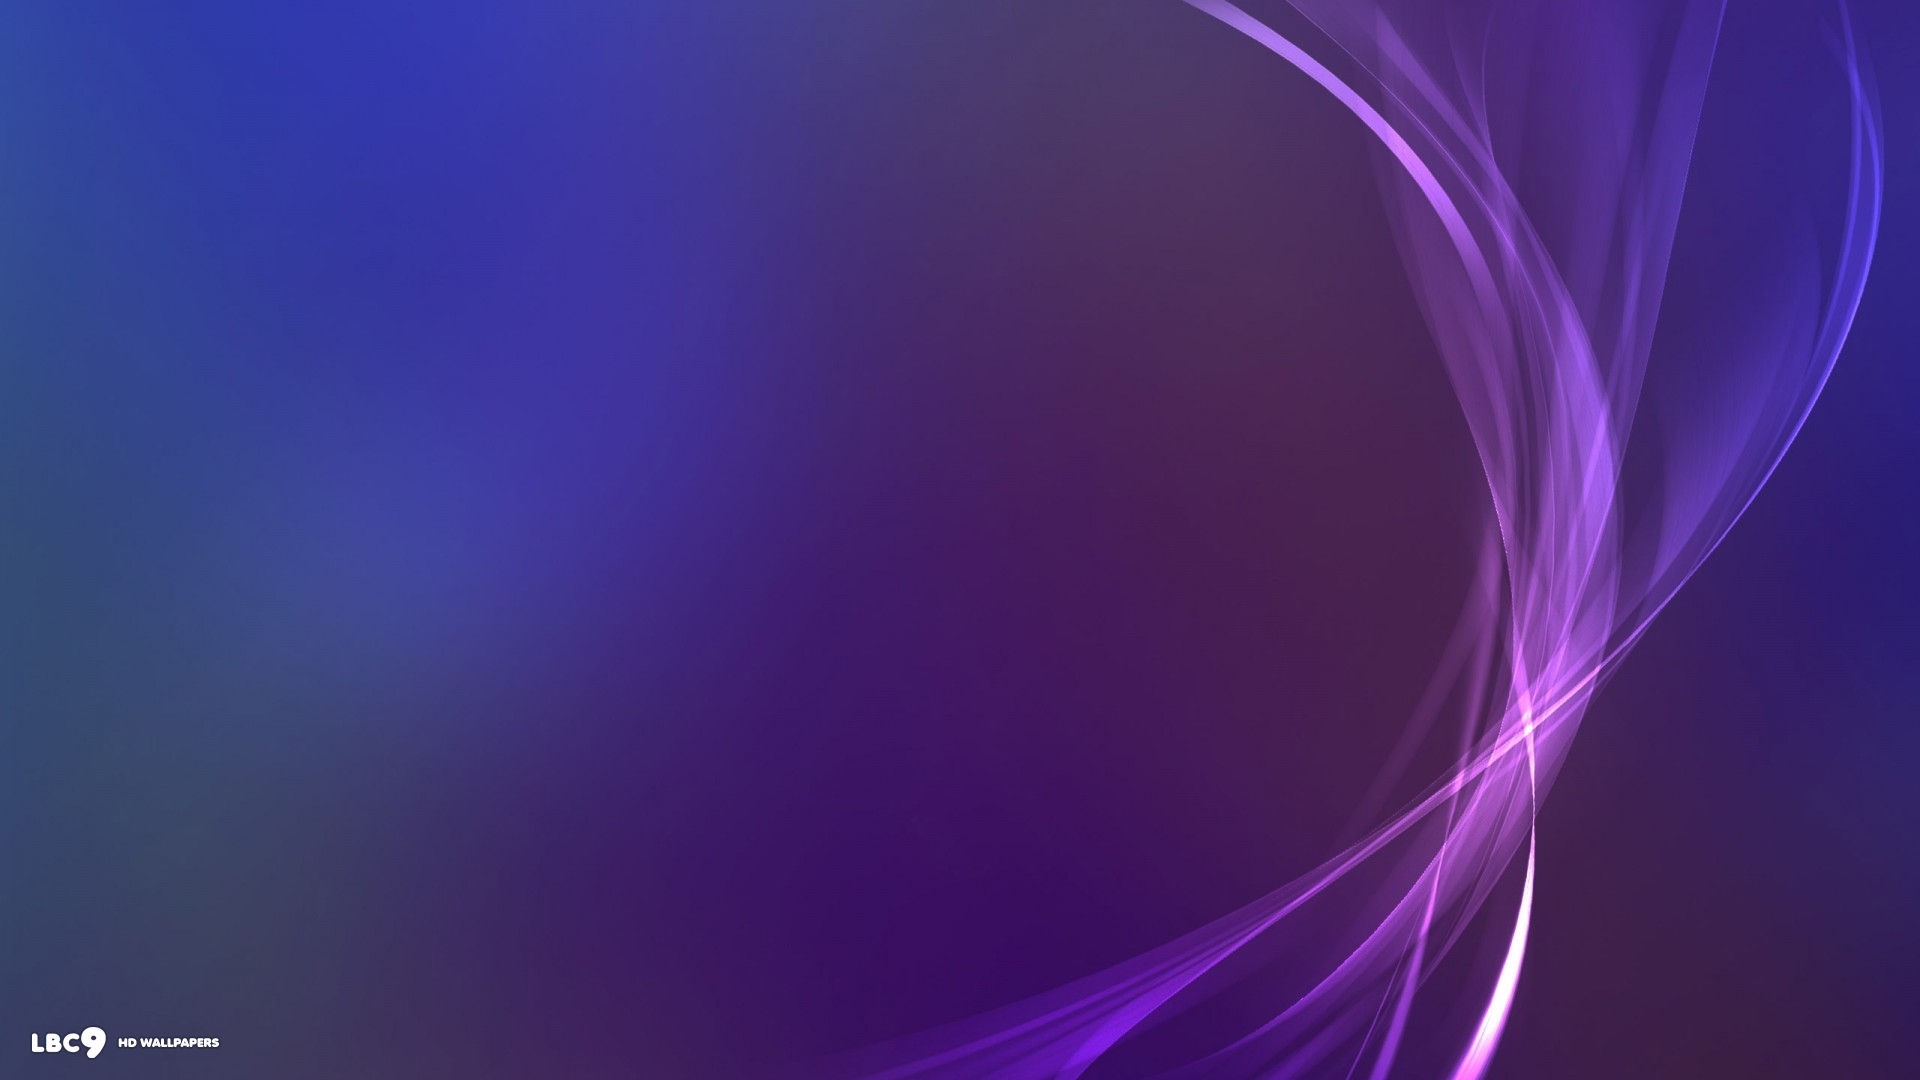 Hd Abstract Desktop Wallpaper: Abstract Lines Hd Background